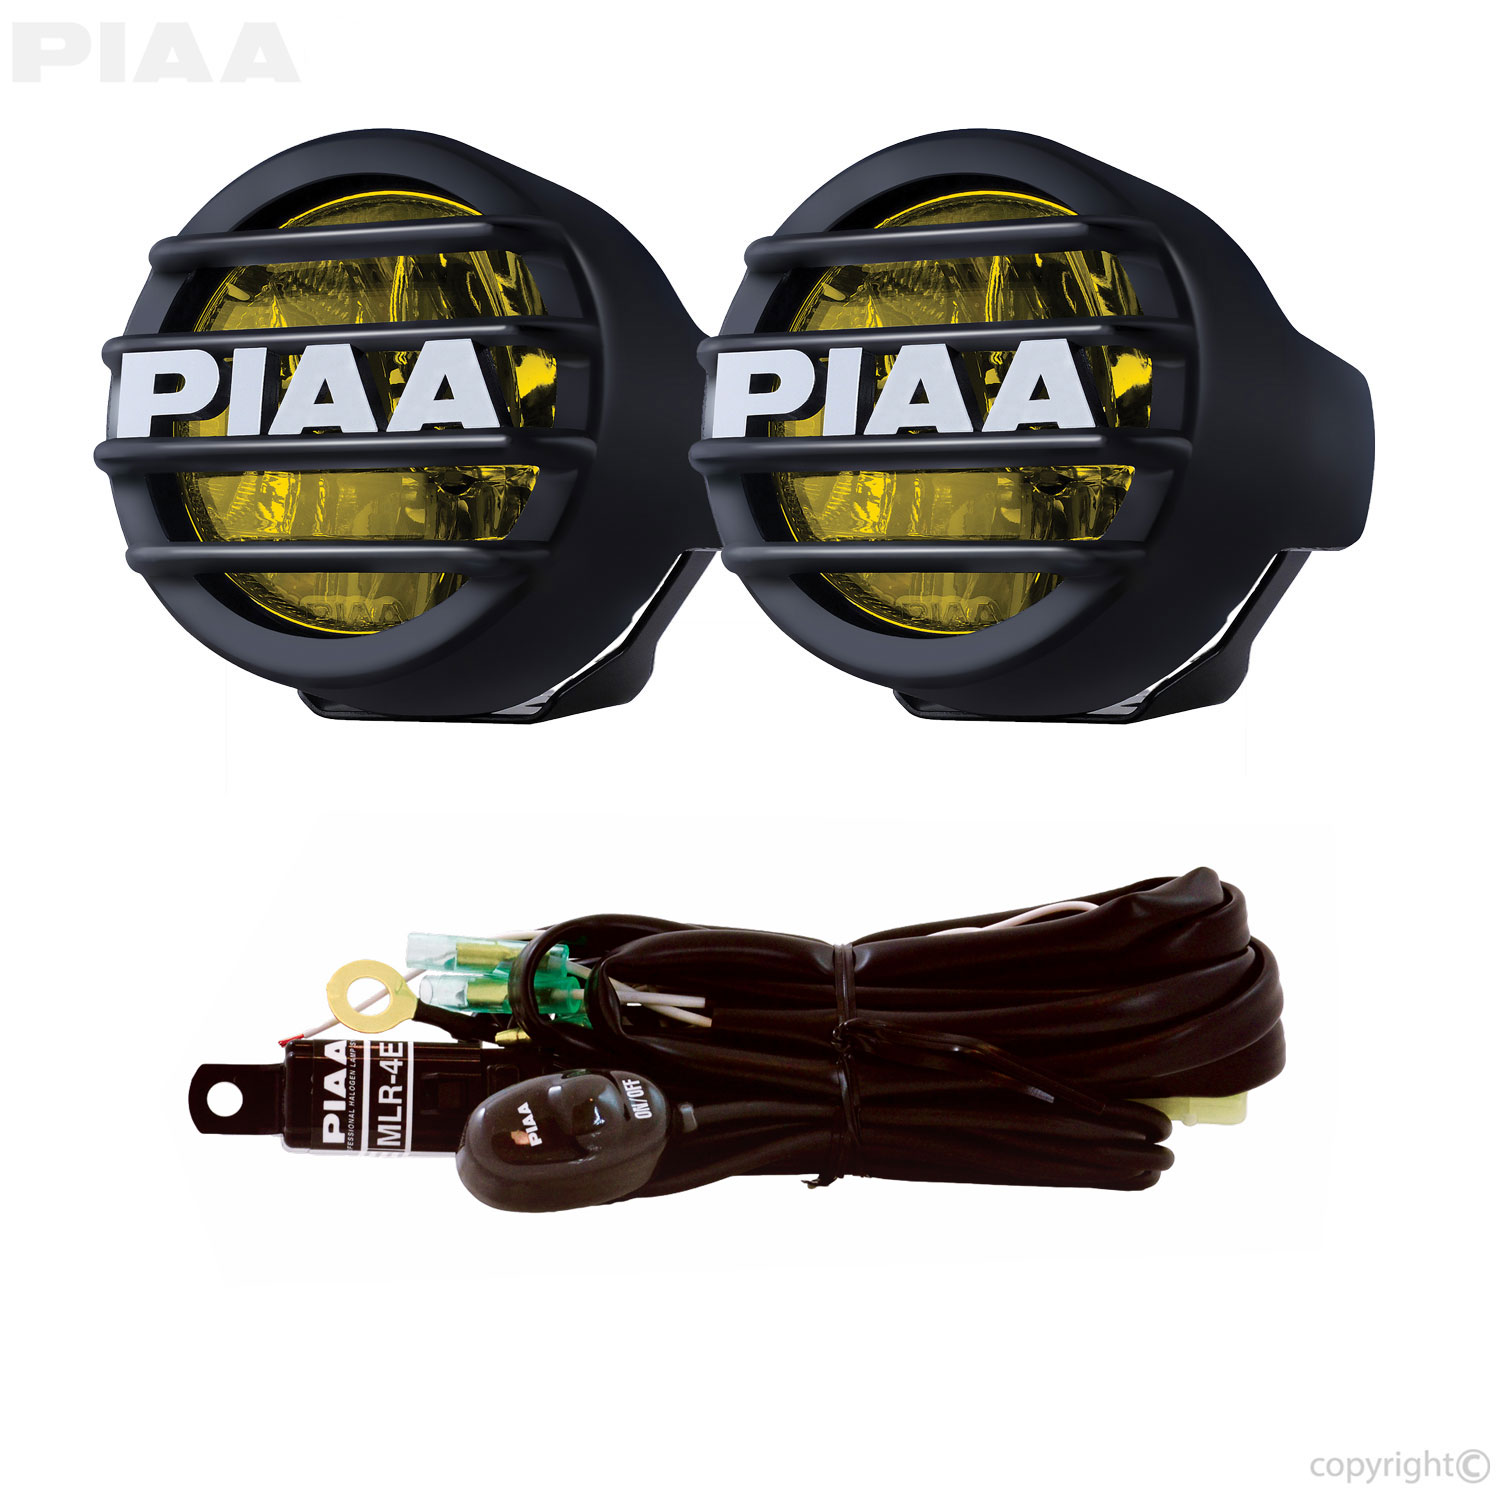 lp530 led wiring harness wiring diagrams best piaa lp530 ion yellow 3 5 led driving light kit 22 73532 radio wiring harness lp530 led wiring harness